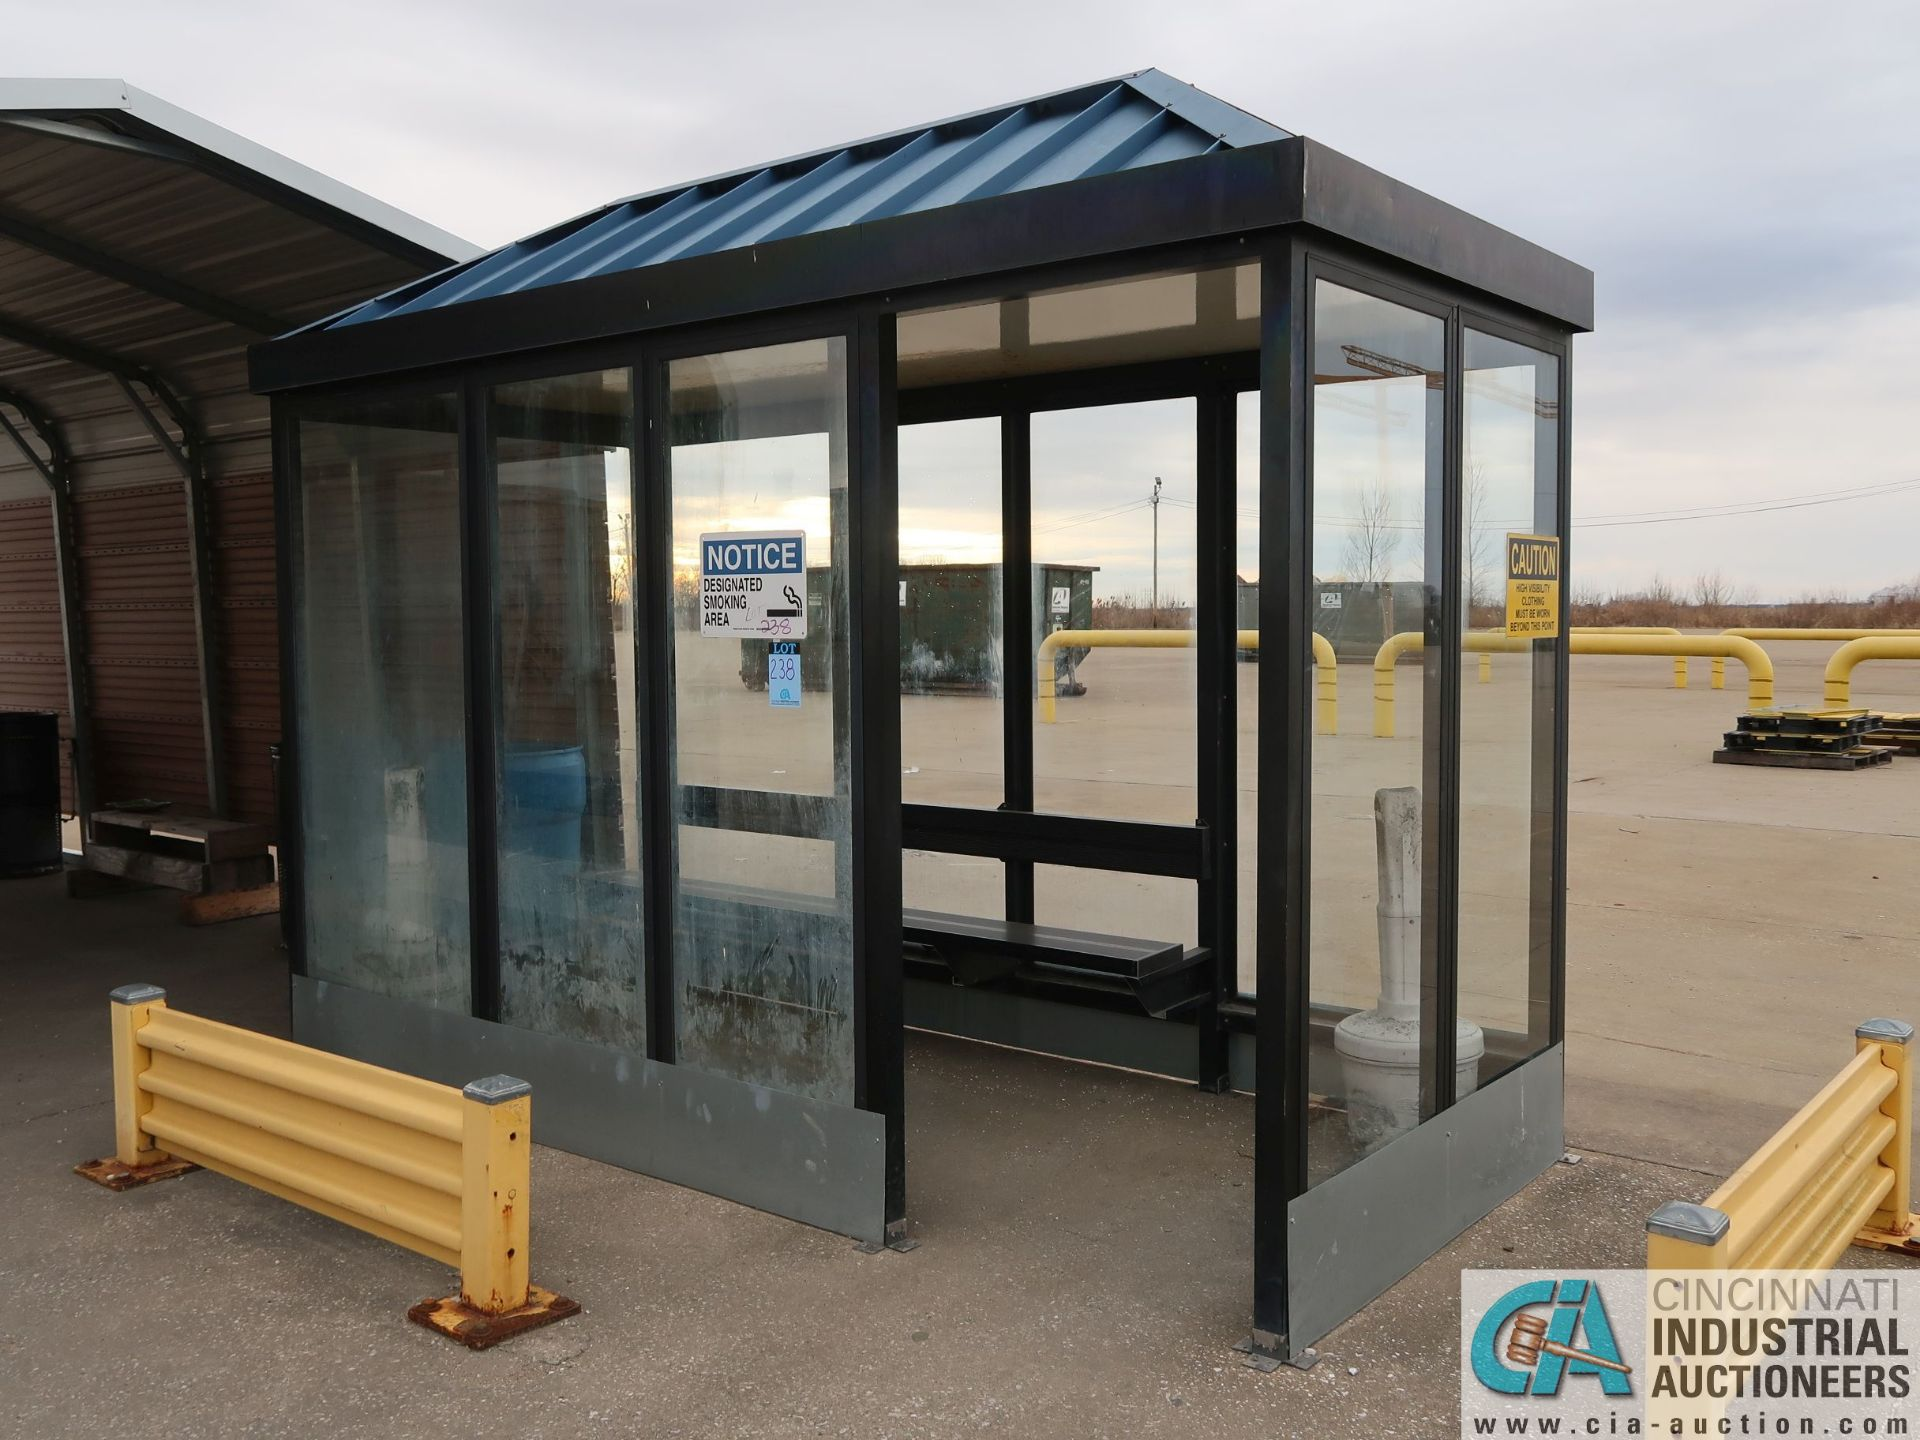 Lot 238 - GLASS ENCLOSED SMOKE SHACK WITH 12' X 20' CARPORT